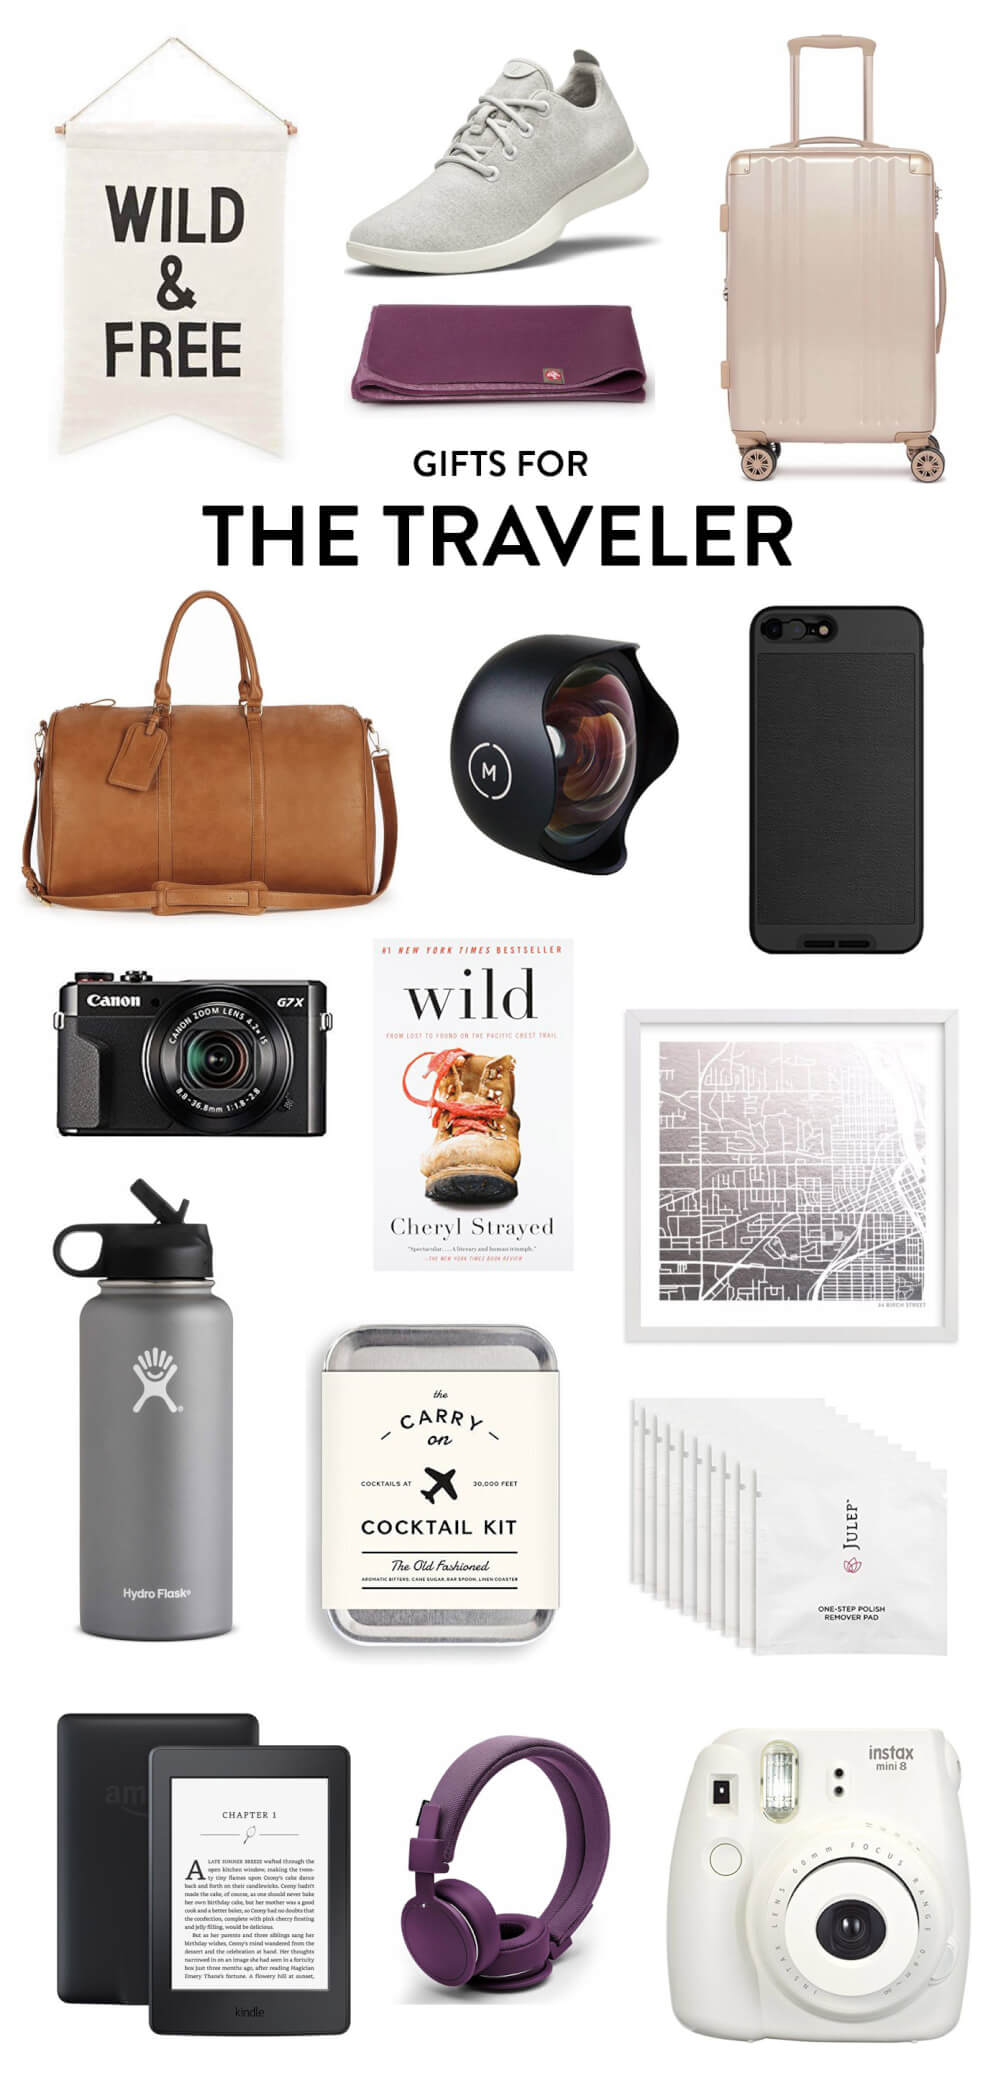 "Perfect for the friend who absolutely loves to travel and adventure! Holiday gifting ideas include everything from a Wild & Free banner, to Allbirds, to a foldable yoga mat, to a cute carry-on, to a Moment wide angle lens and phone case, to customizable map art, to ""Wild"", to an Instax camera, to headphones, to a Kindle, to a weekender bag to my favorite Canon Powershot travel camera. 